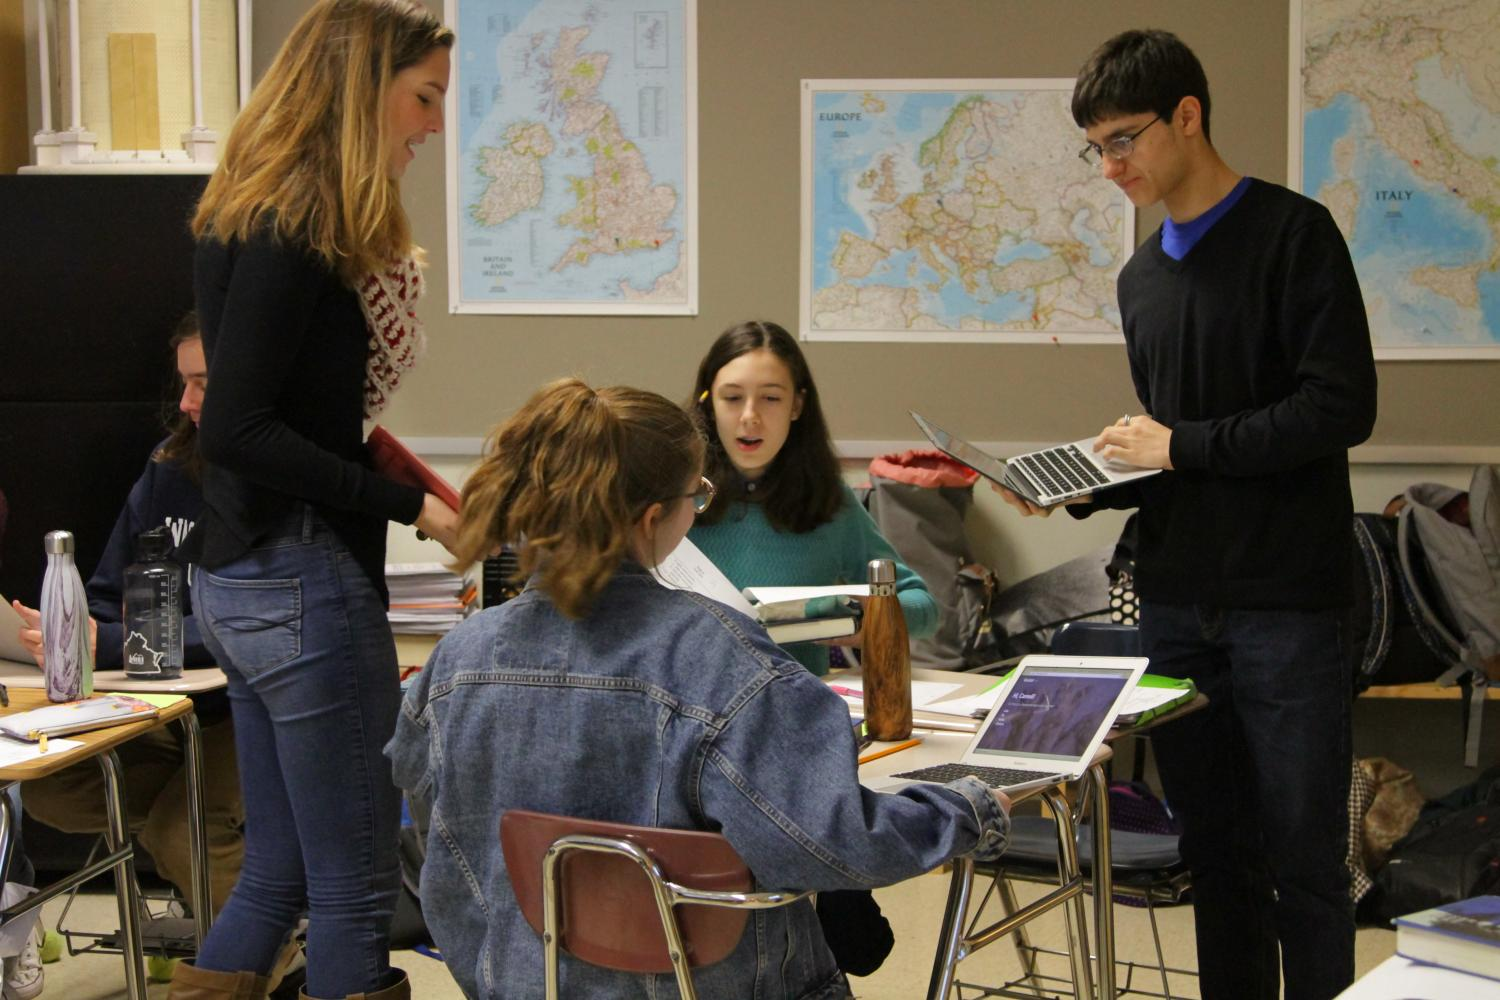 Image courtesy of Victor O'Neill Studios.  Sophomores Draken Garfinkel, Lily De Benigno, Julia Billera and Reilly Halvorson work in Latin class.